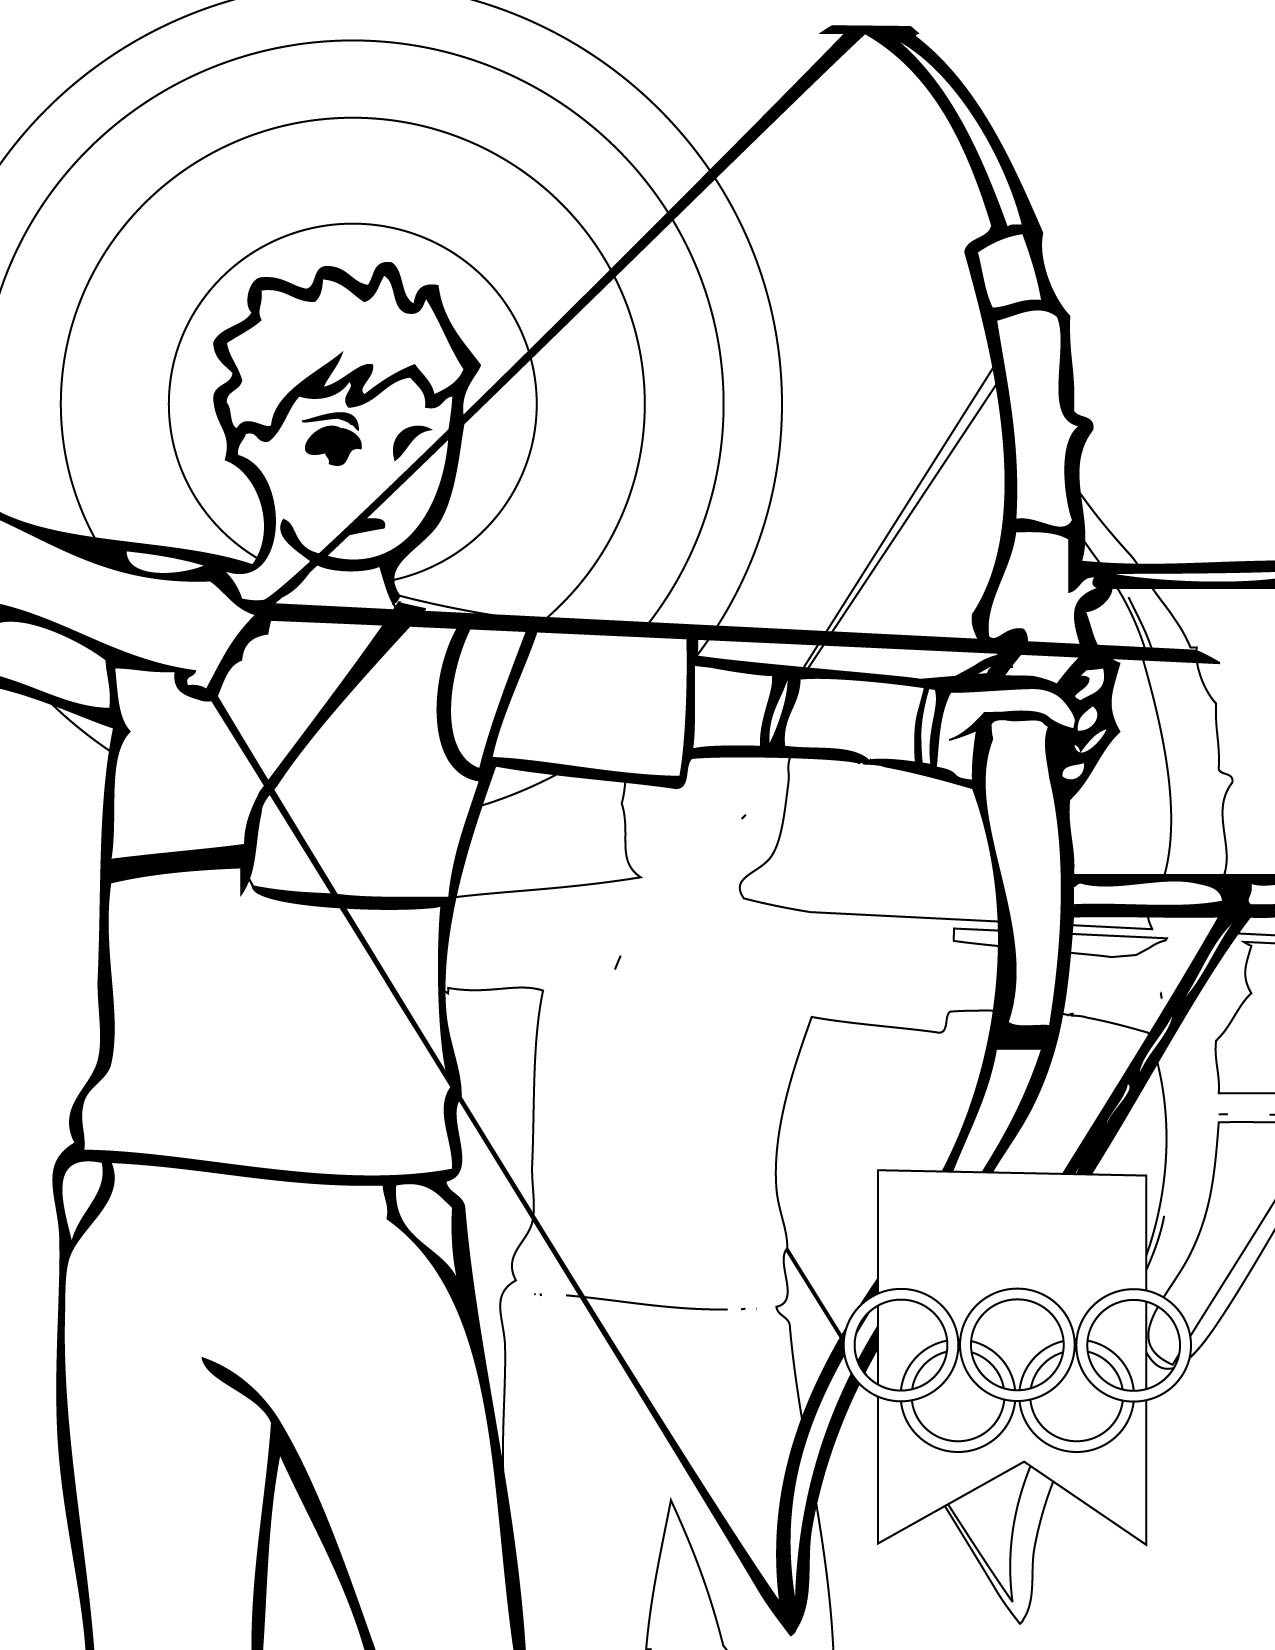 Free Coloring Pages Sports  printable sports coloring pages for kids free printable